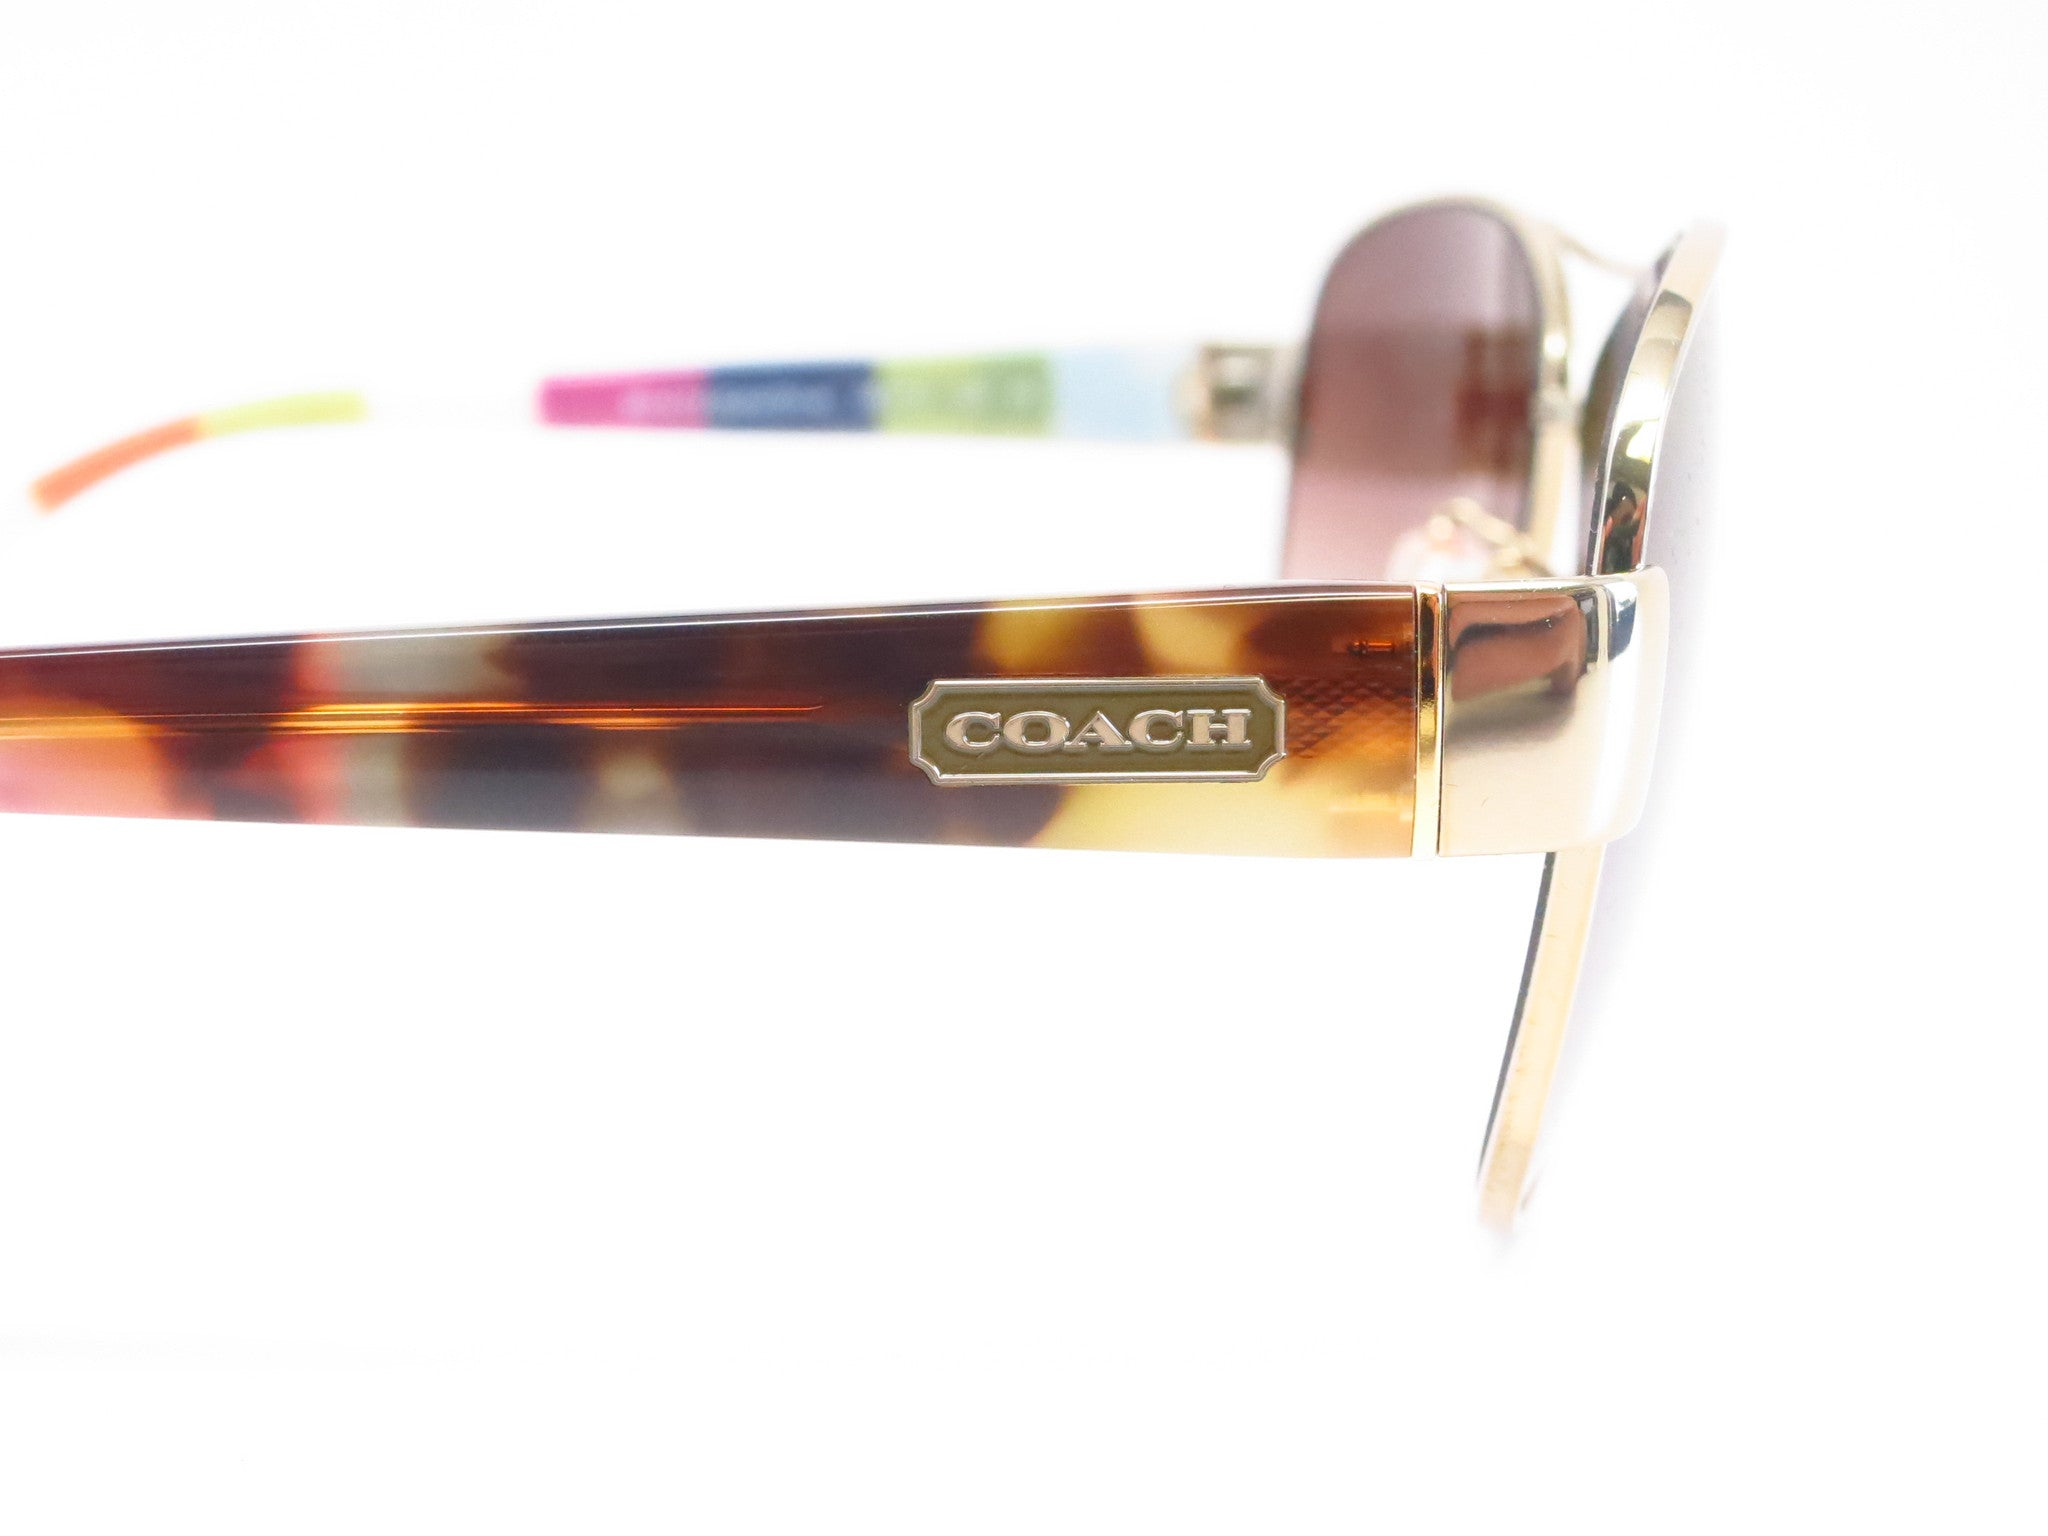 Coach Eyeglass Frames Repair : Coach eyeglasses replacement parts Fashion glasses photo ...